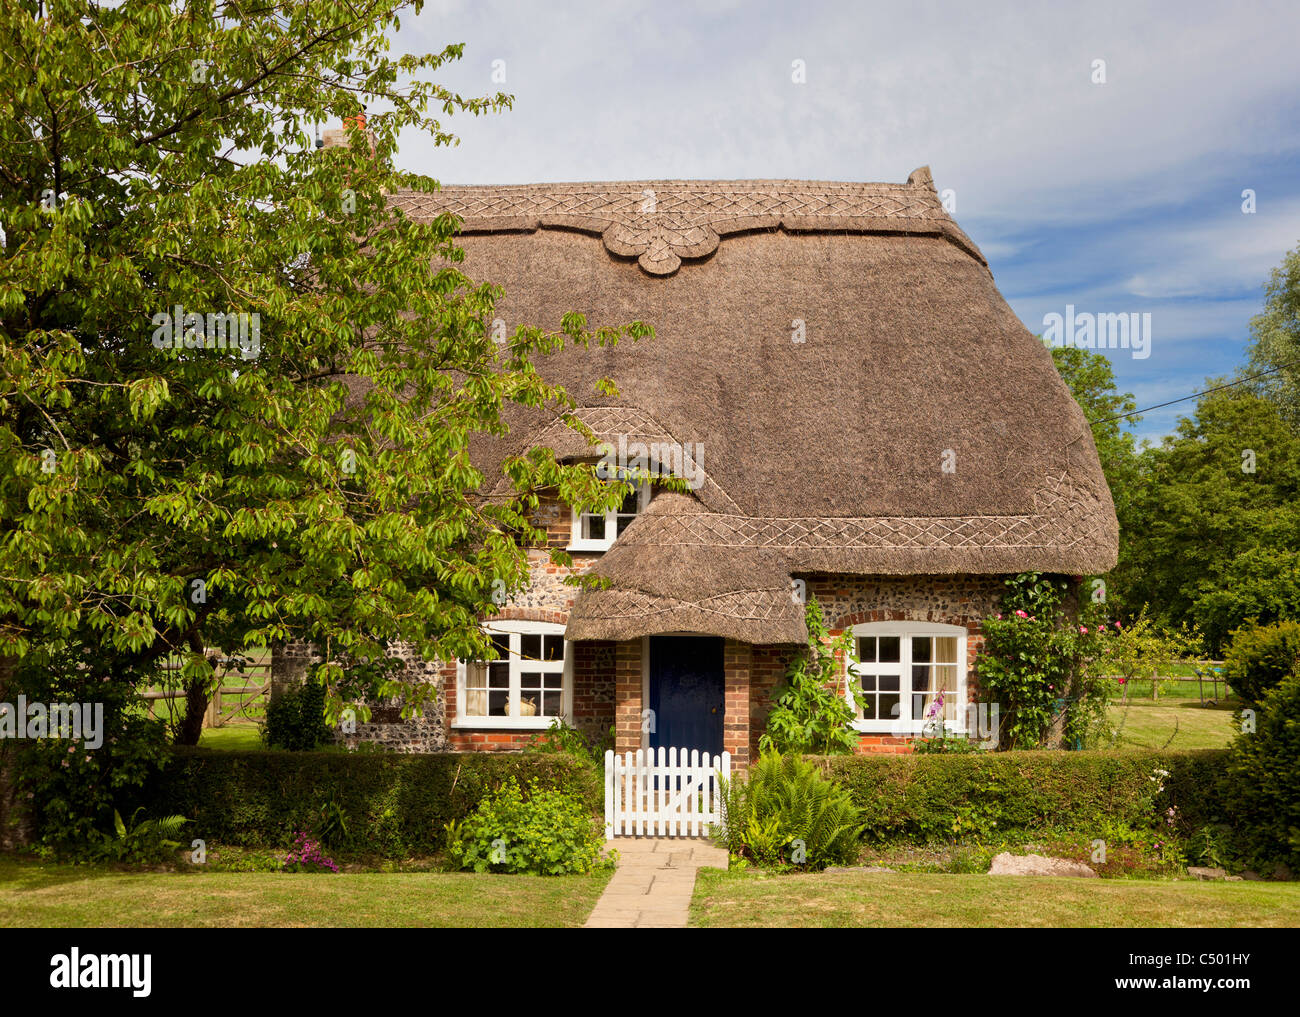 Tiny old thatched cottage in the pretty village of Tarrant Monkton, Dorset, England, UK - Stock Image